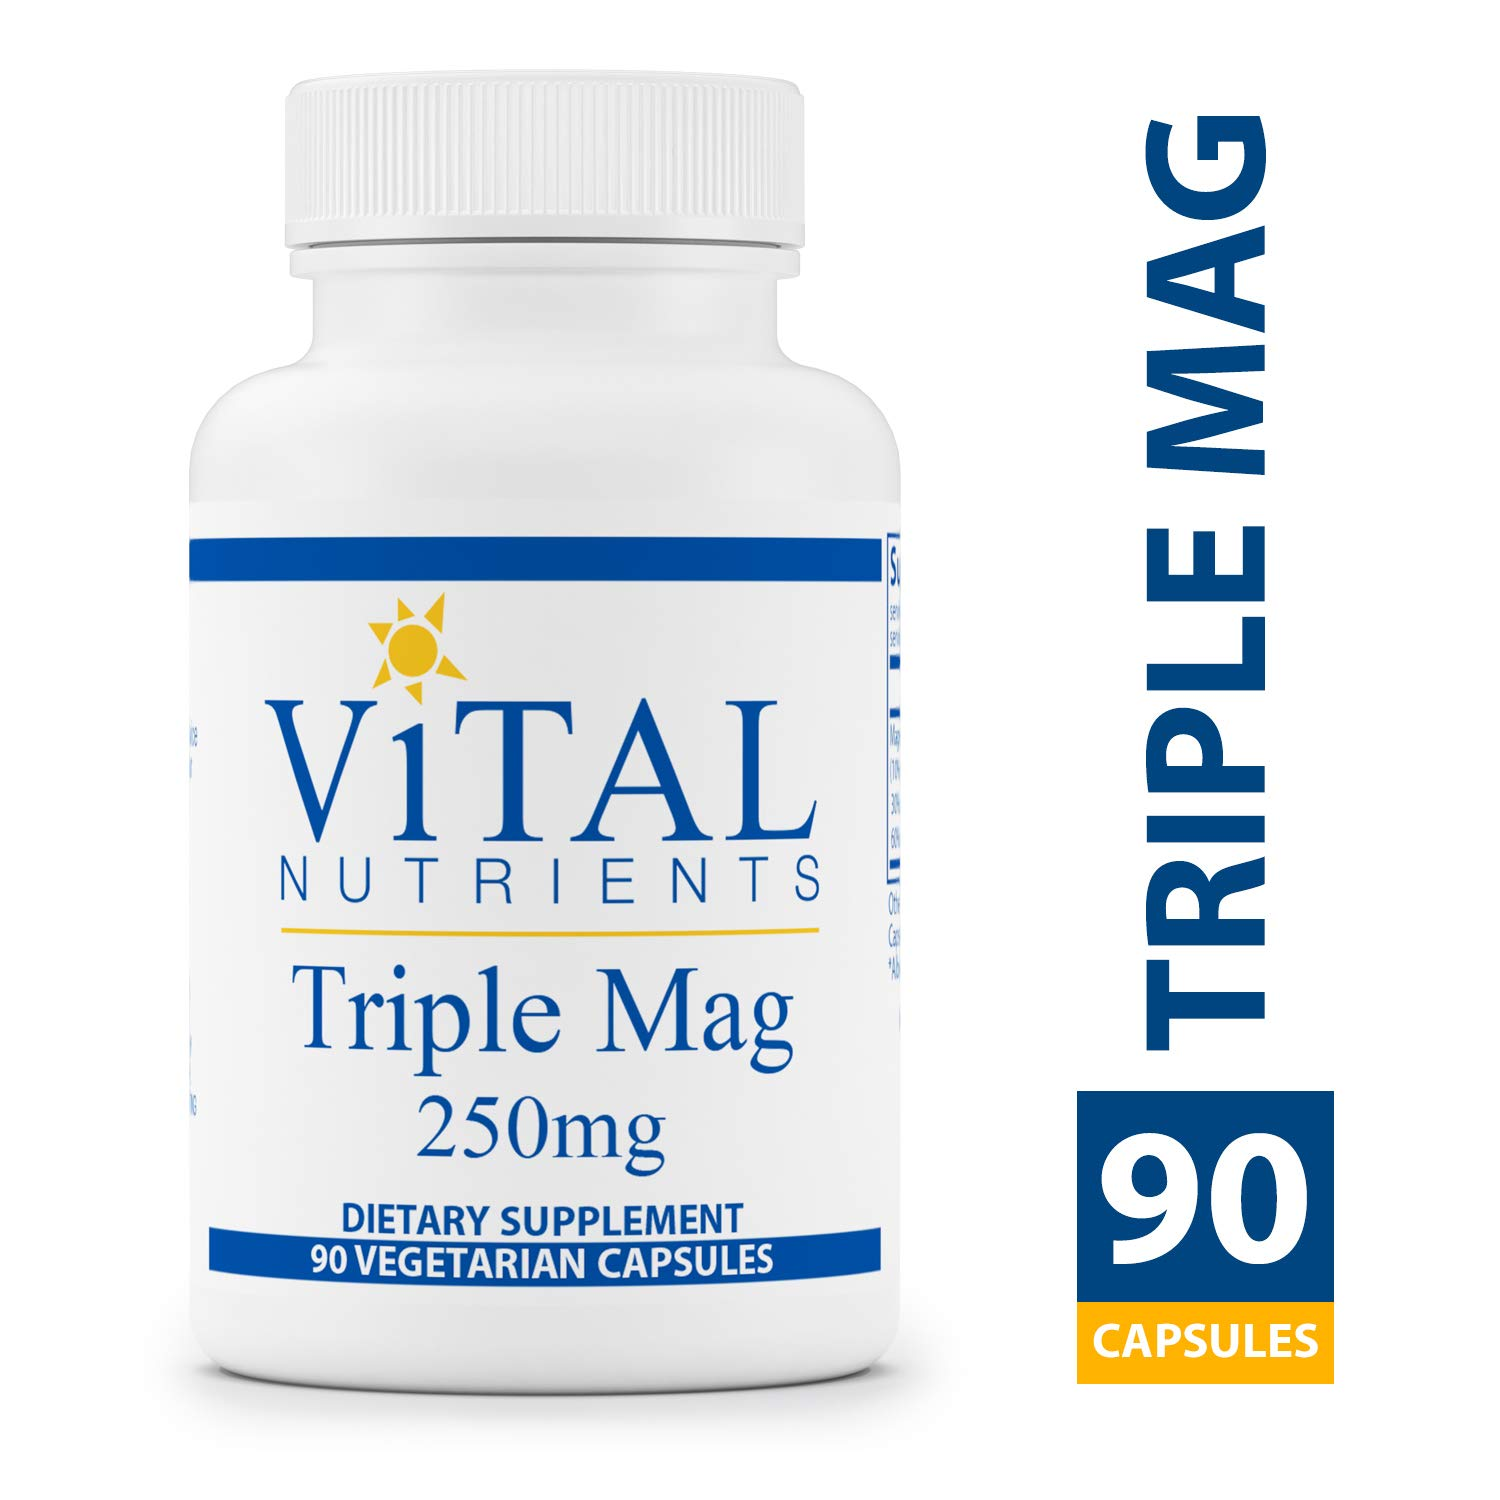 Vital Nutrients - Triple Mag 250 mg - Magnesium for Enhanced Absorption and Metabolism. Contains Magnesium Oxide, Malate and Glycinate - 90 Vegetarian Capsules per Bottle